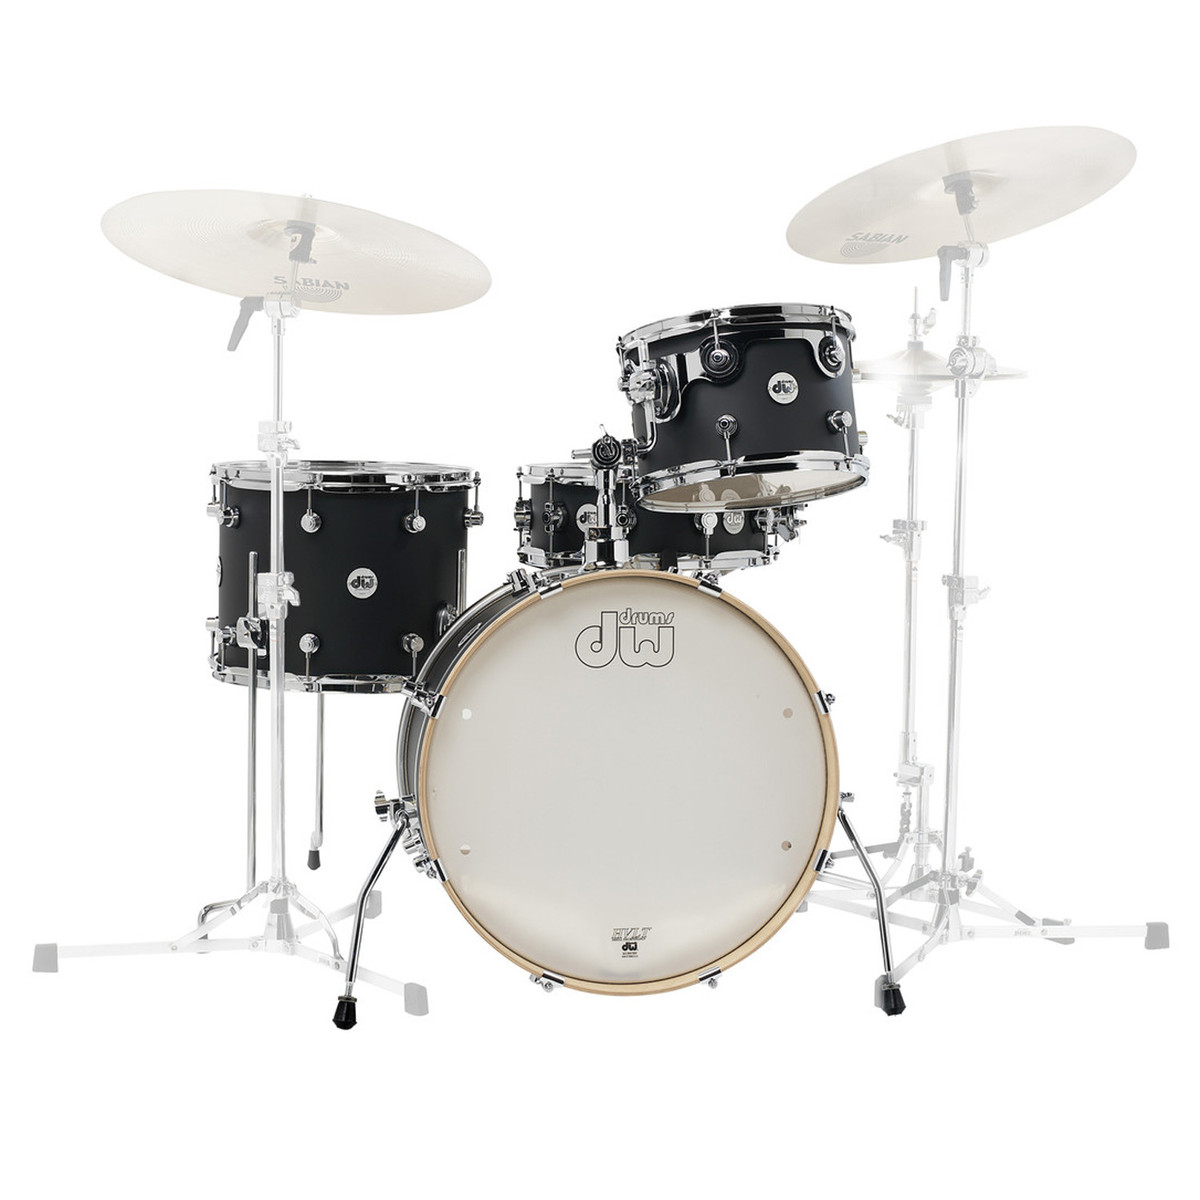 DW Frequent Flyer Matt Lacquer 20 Maple Shell Pack Black Satin Loading Zoom